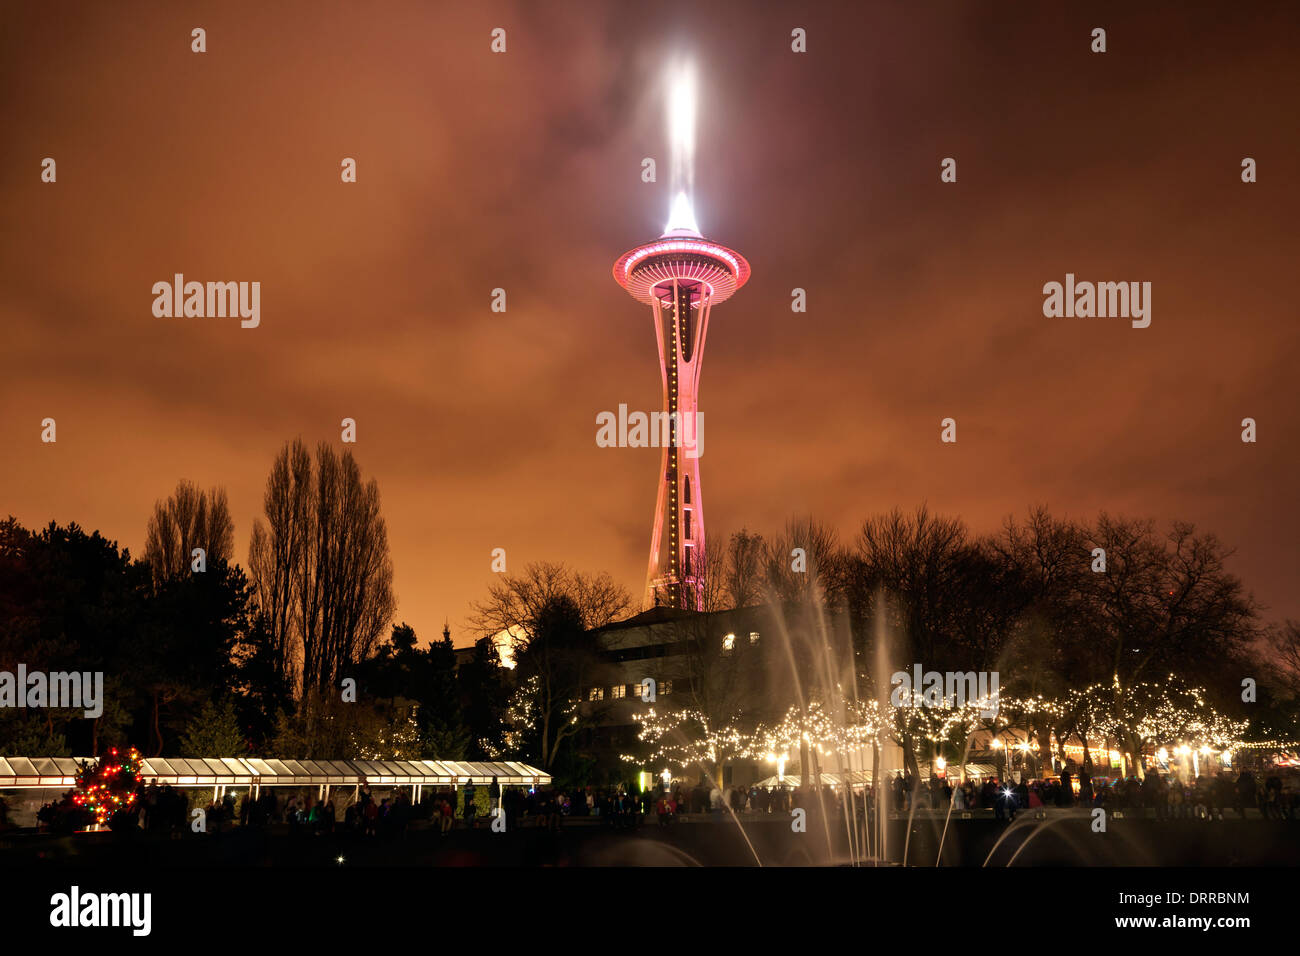 Seattle Downtown At Christmas Stock Photos & Seattle